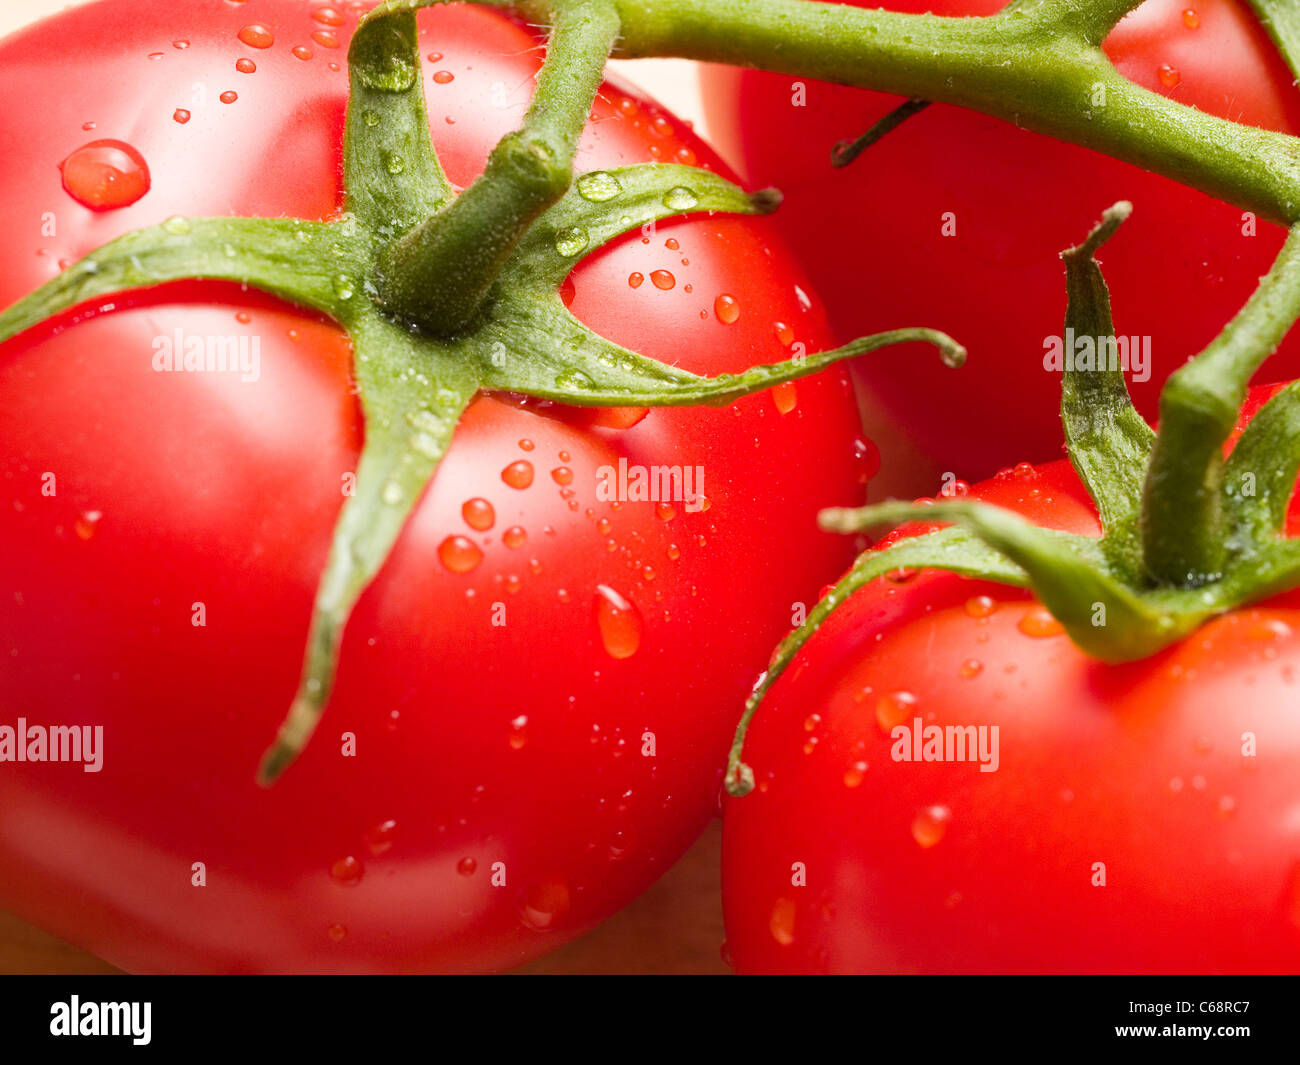 Detailaufnahme von nassen Tomaten | Detail photo of wet tomatoes Stock Photo